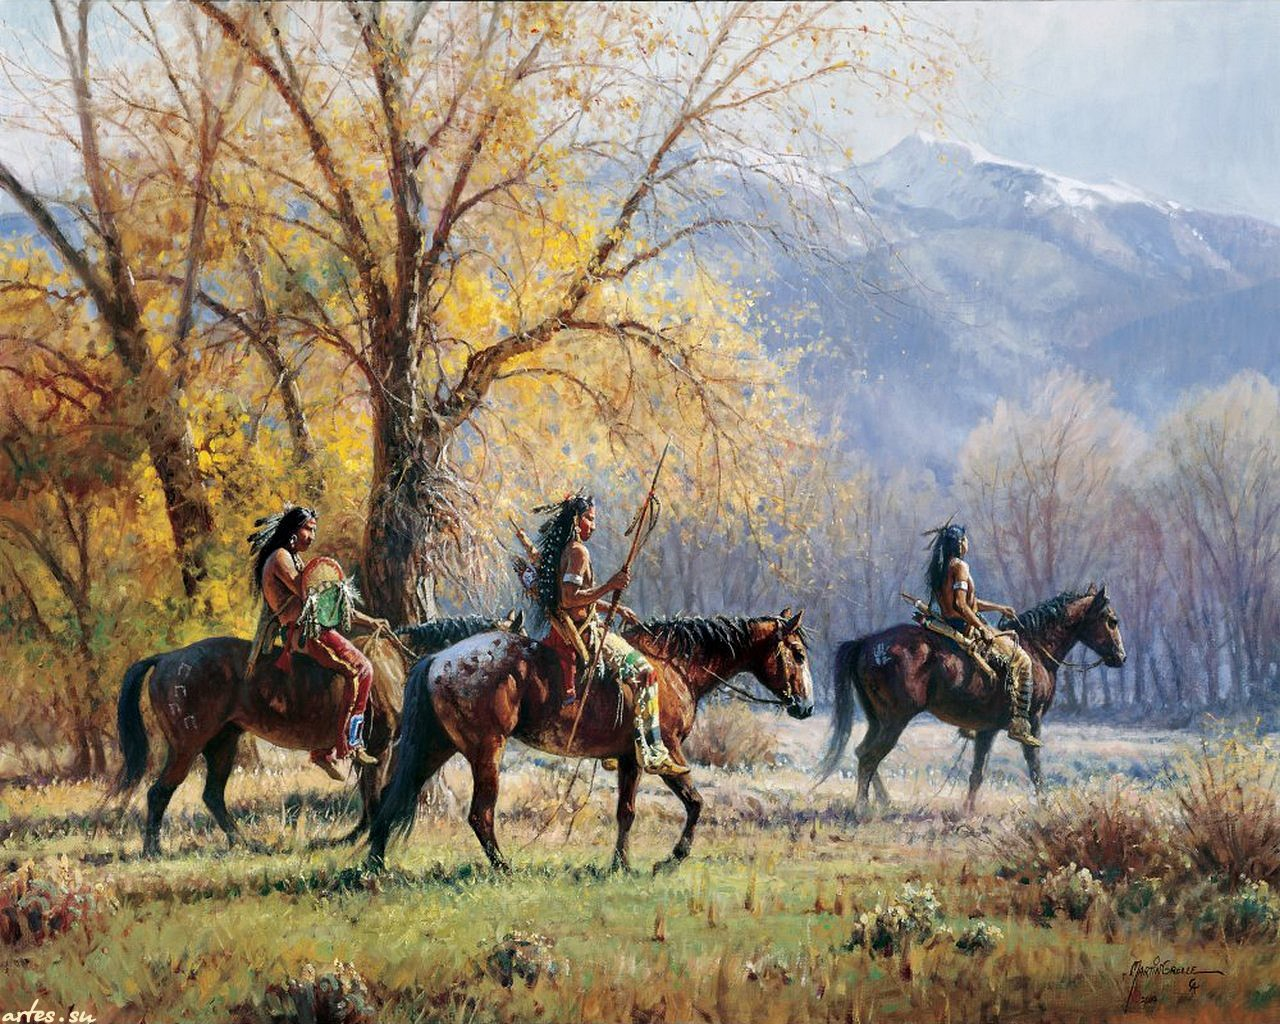 painting wallpaper western - photo #41